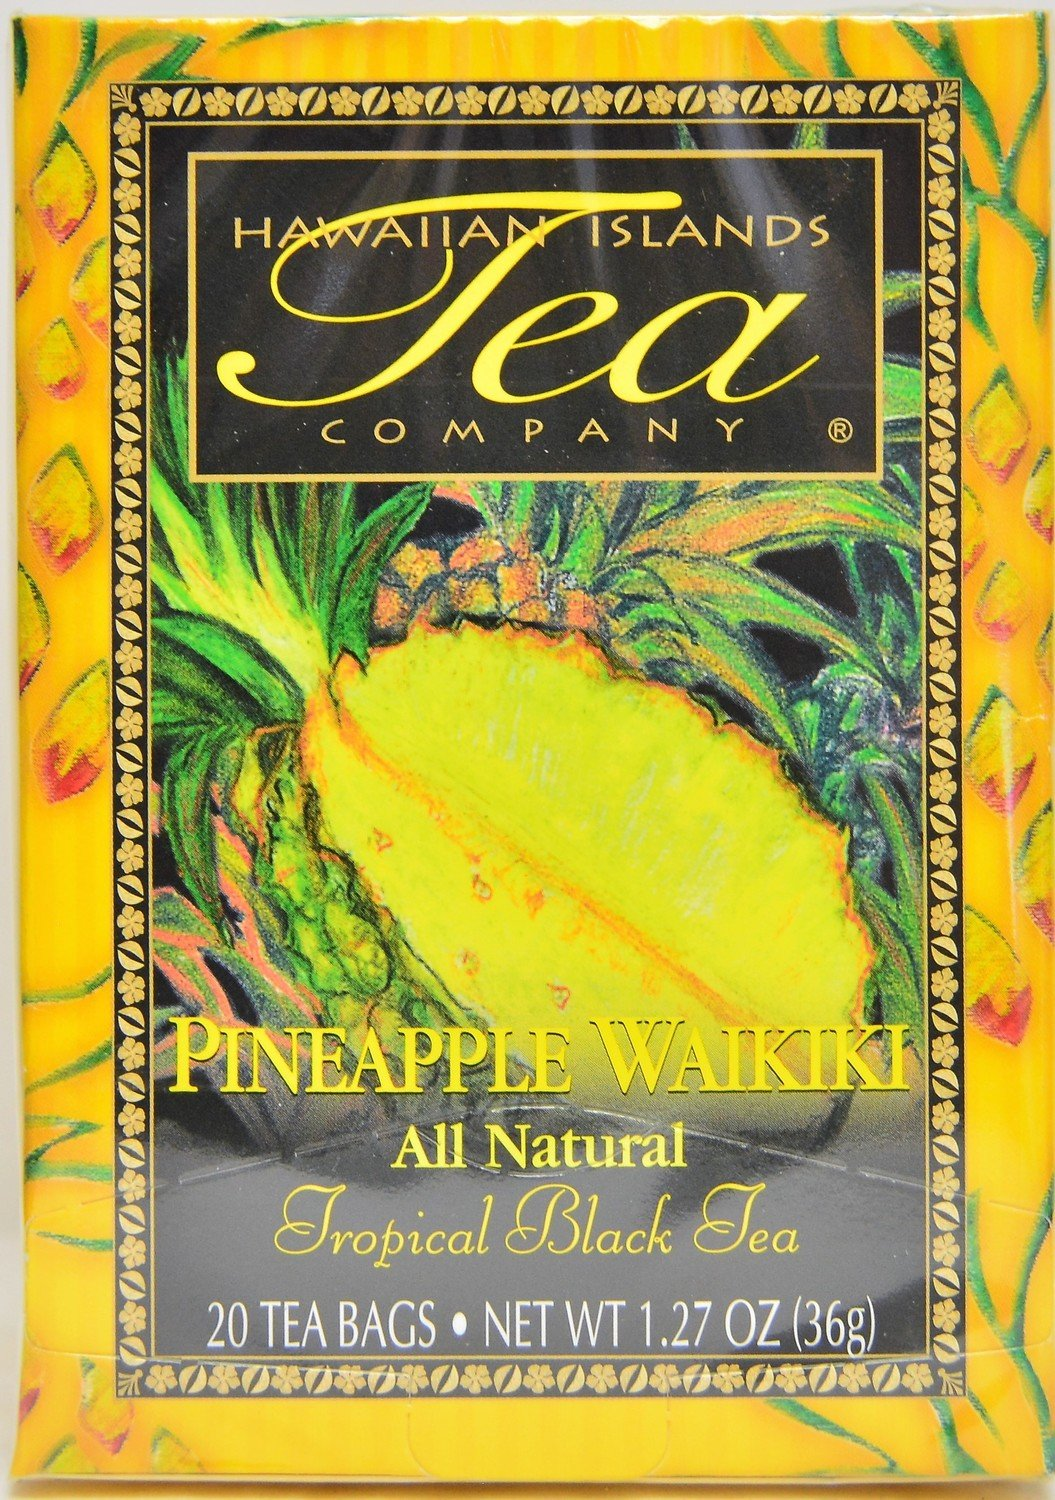 Hawaiian Islands Tea Co. Pineapple Waikiki Tea 20CT/EA 1.27oz